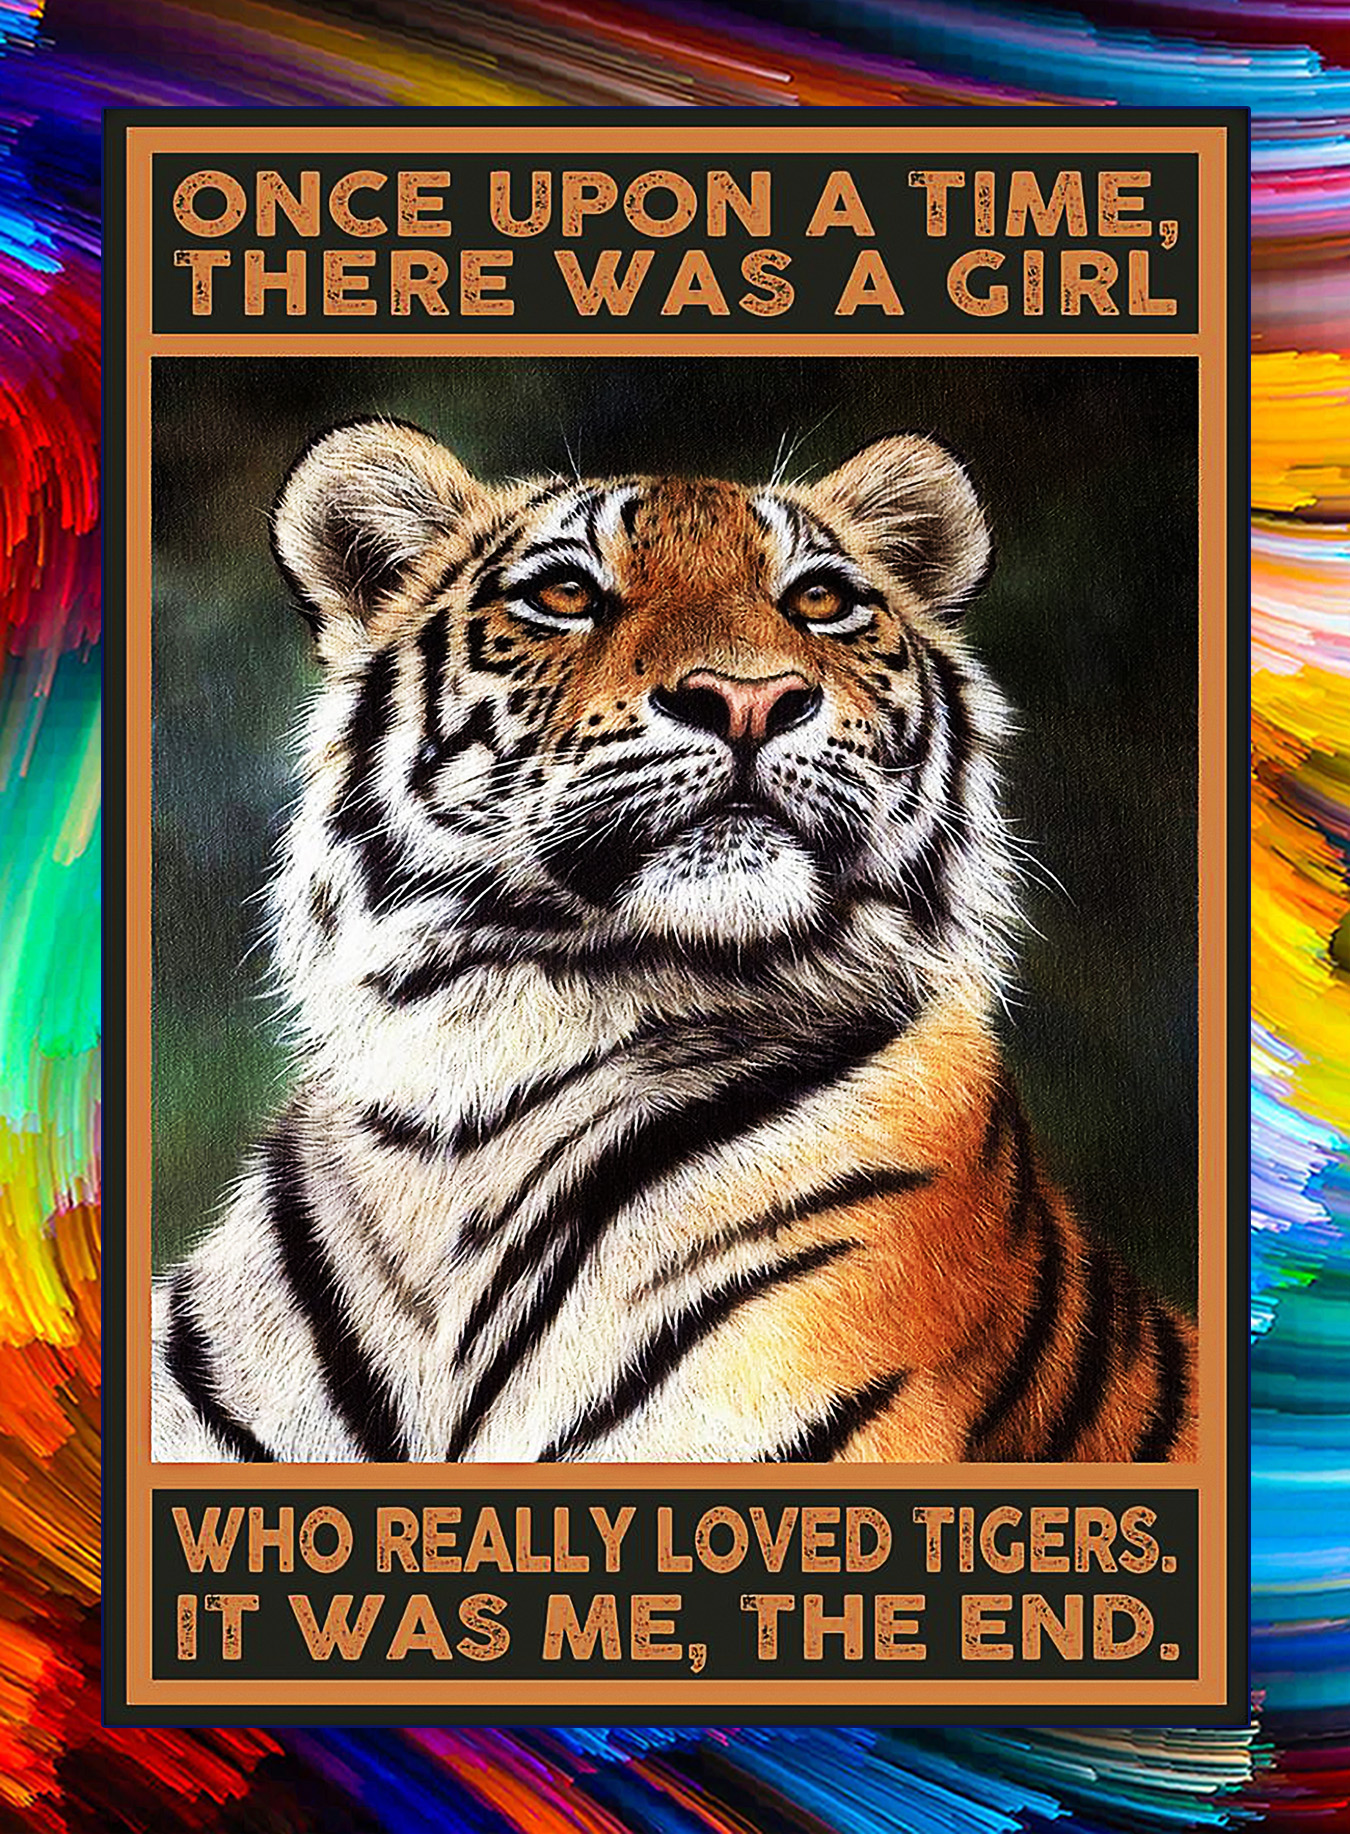 Once upon a time there was a girl who really loved tigers poster - A3